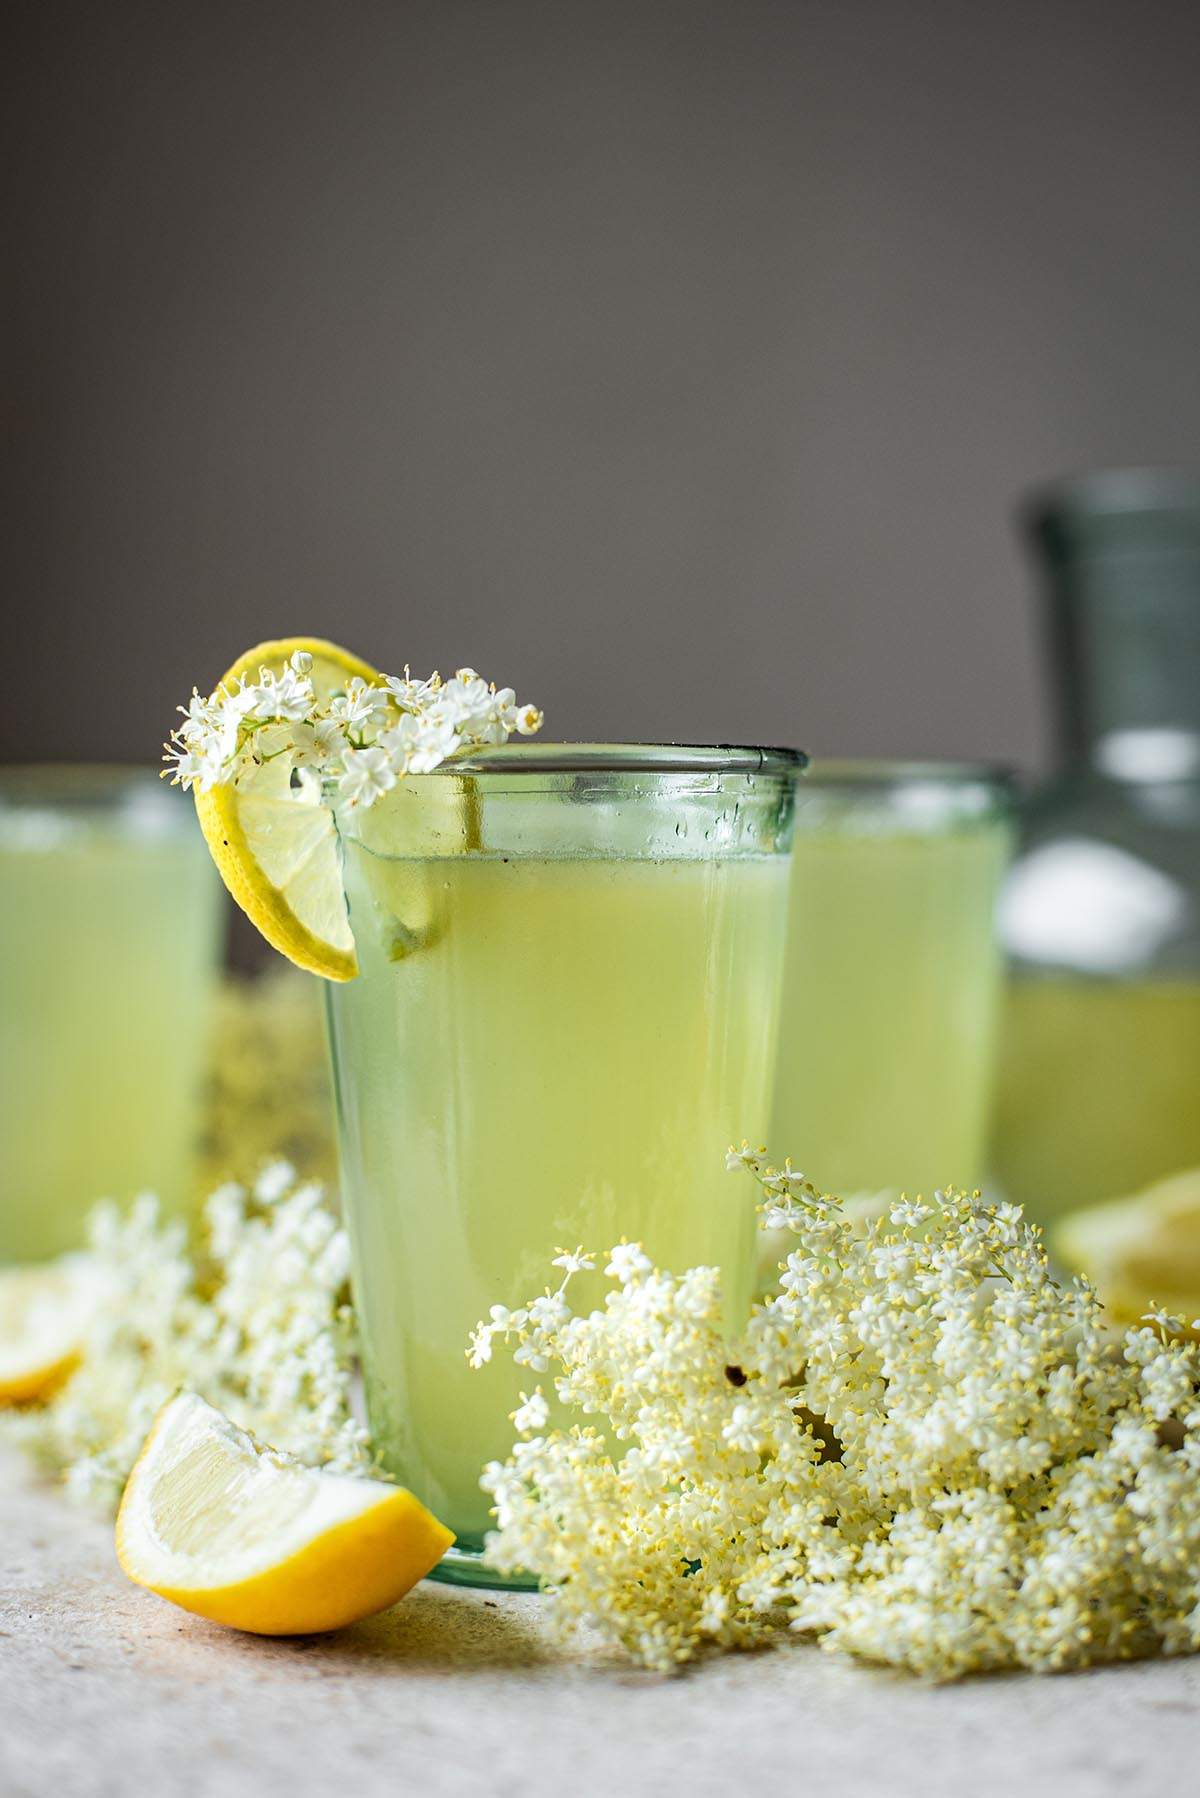 Three glasses of elderflower lemonade with a pitcher in background.